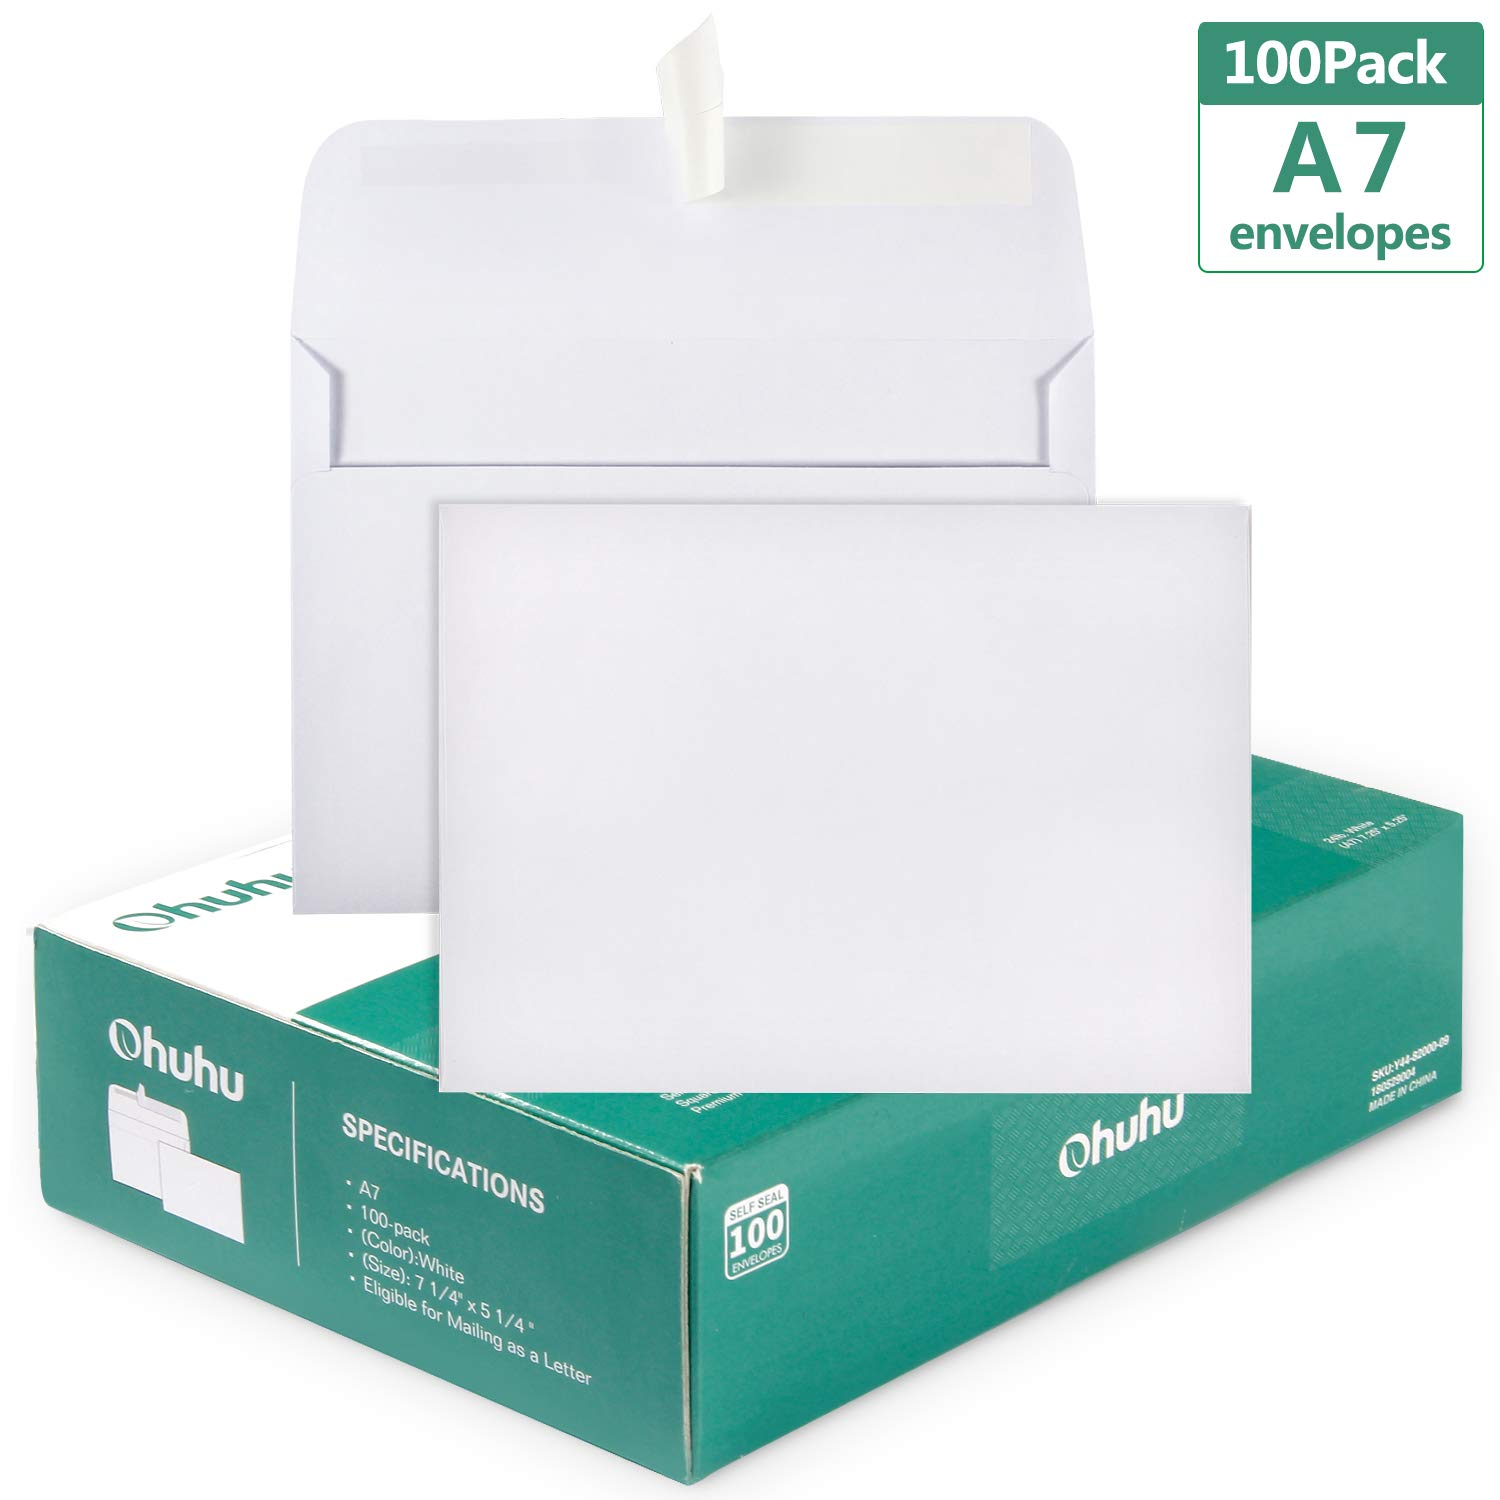 """100 White A7 Envelopes, Ohuhu A7 5-1/4'' x 7-1/4"""" Printable SELF Seal Envelopes Perfect for 5x7 Chirstmas Cards, 5x7 Photos, Weddings, Invitations, Baby Shower, Birthday, Party Invitations"""